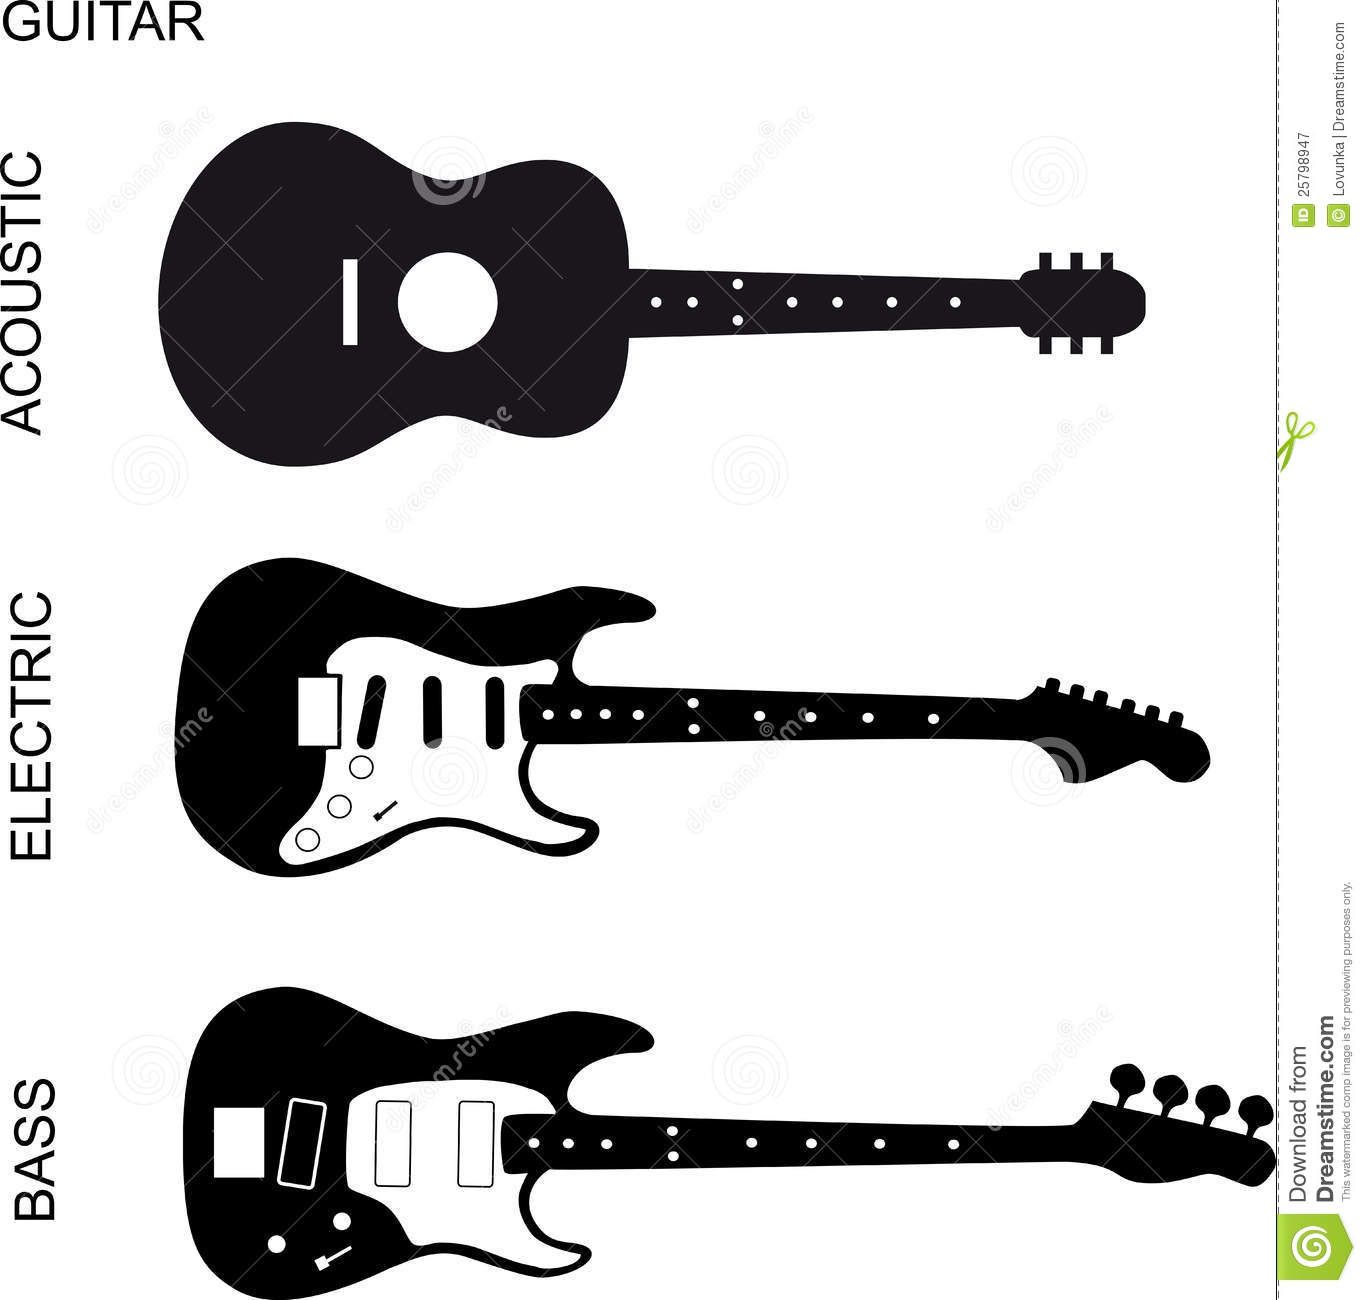 Guitare Clipart guitar clipart black and white - google search | music | guitar